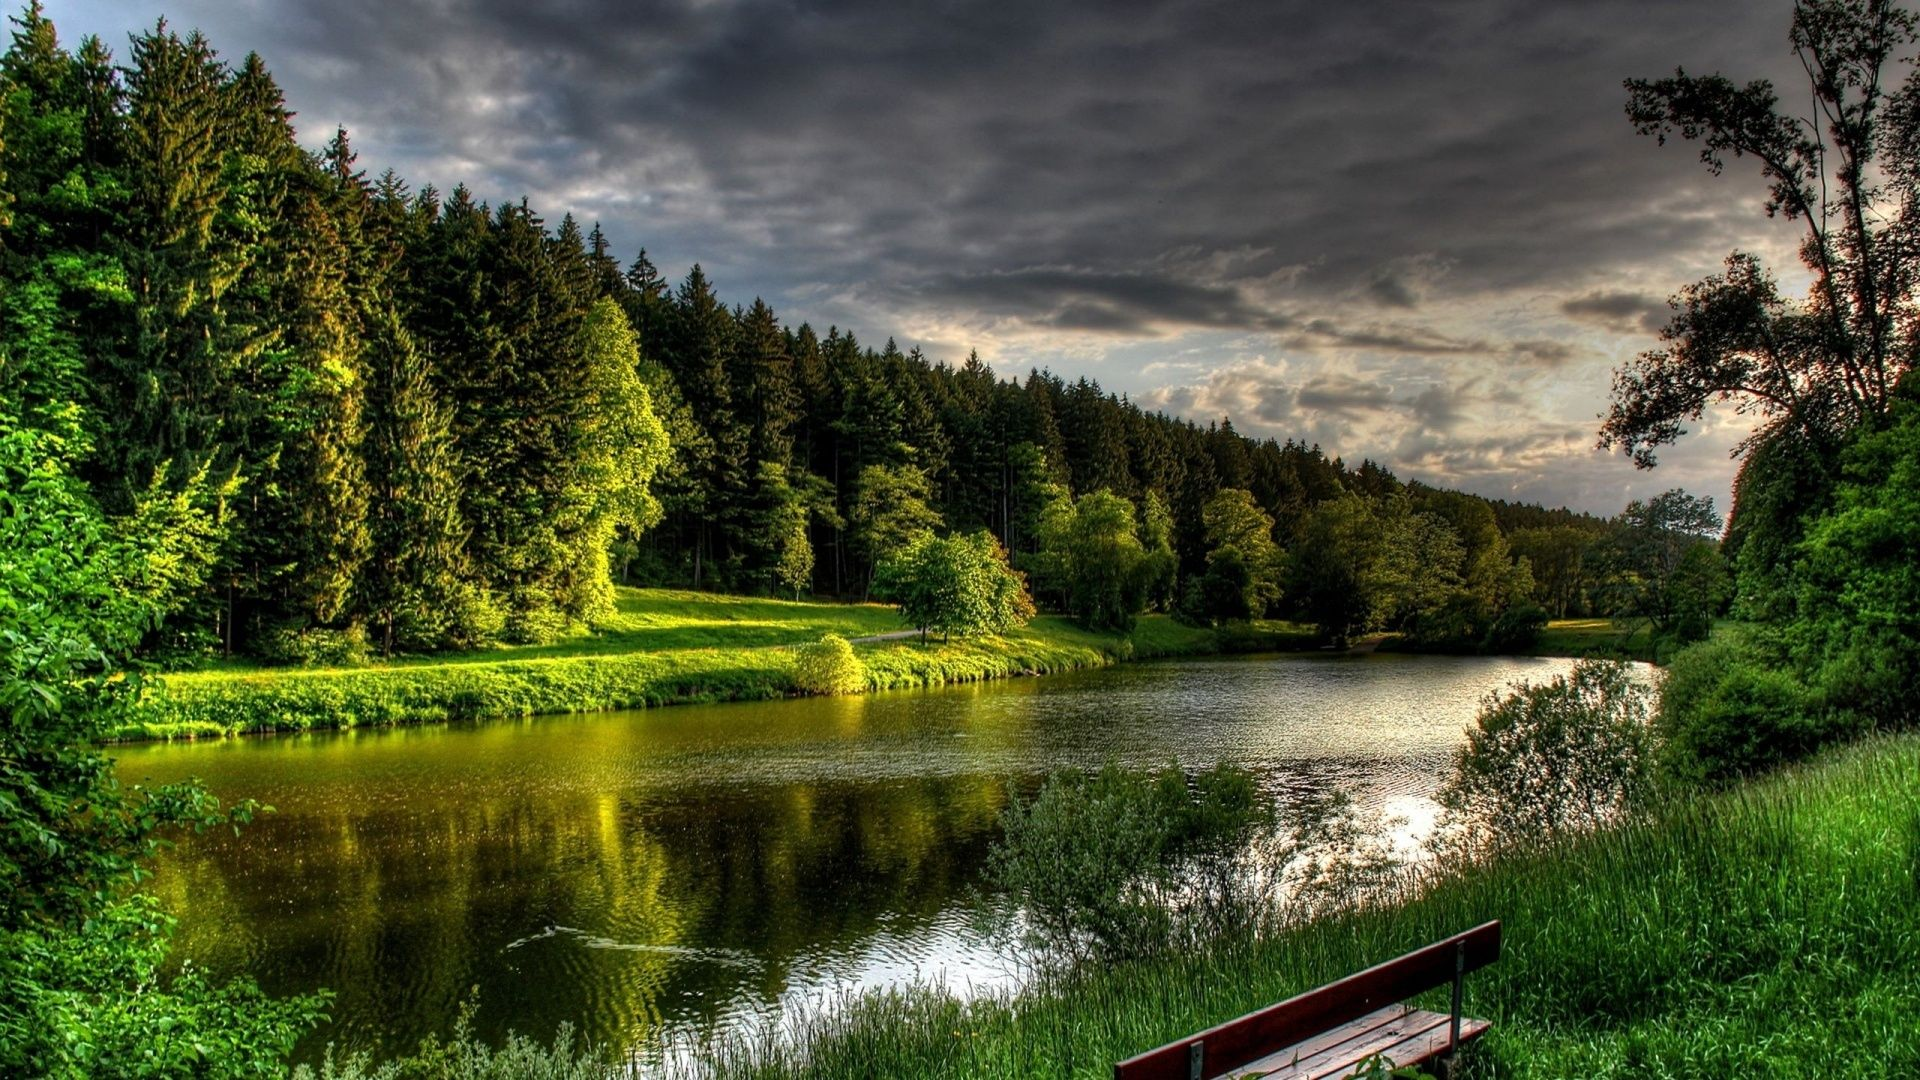 Download Wallpaper 1920x1080 River Summer Bench Trees Full Hd